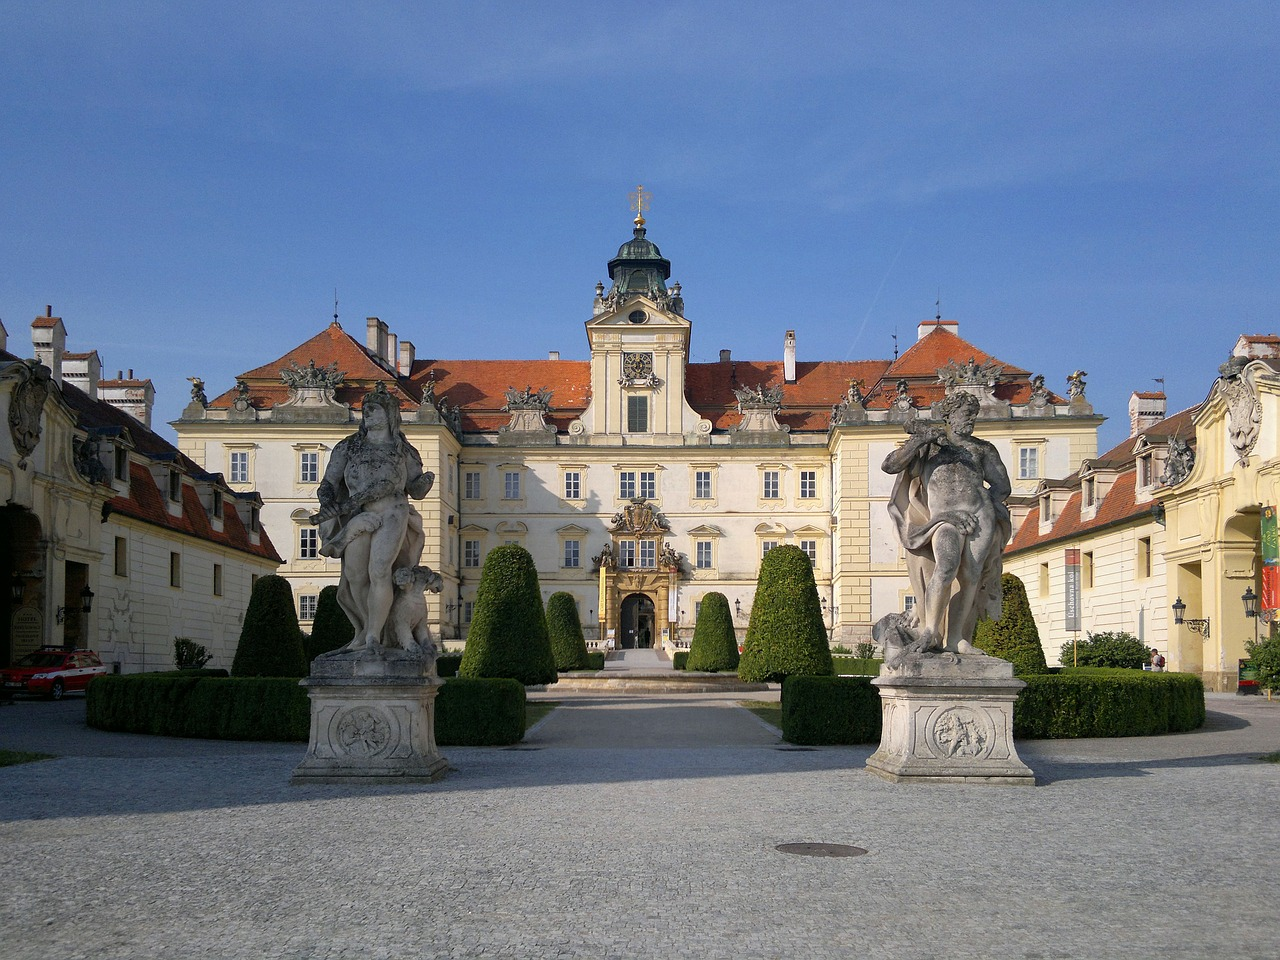 Valtice Castle are located in Moravian wine country